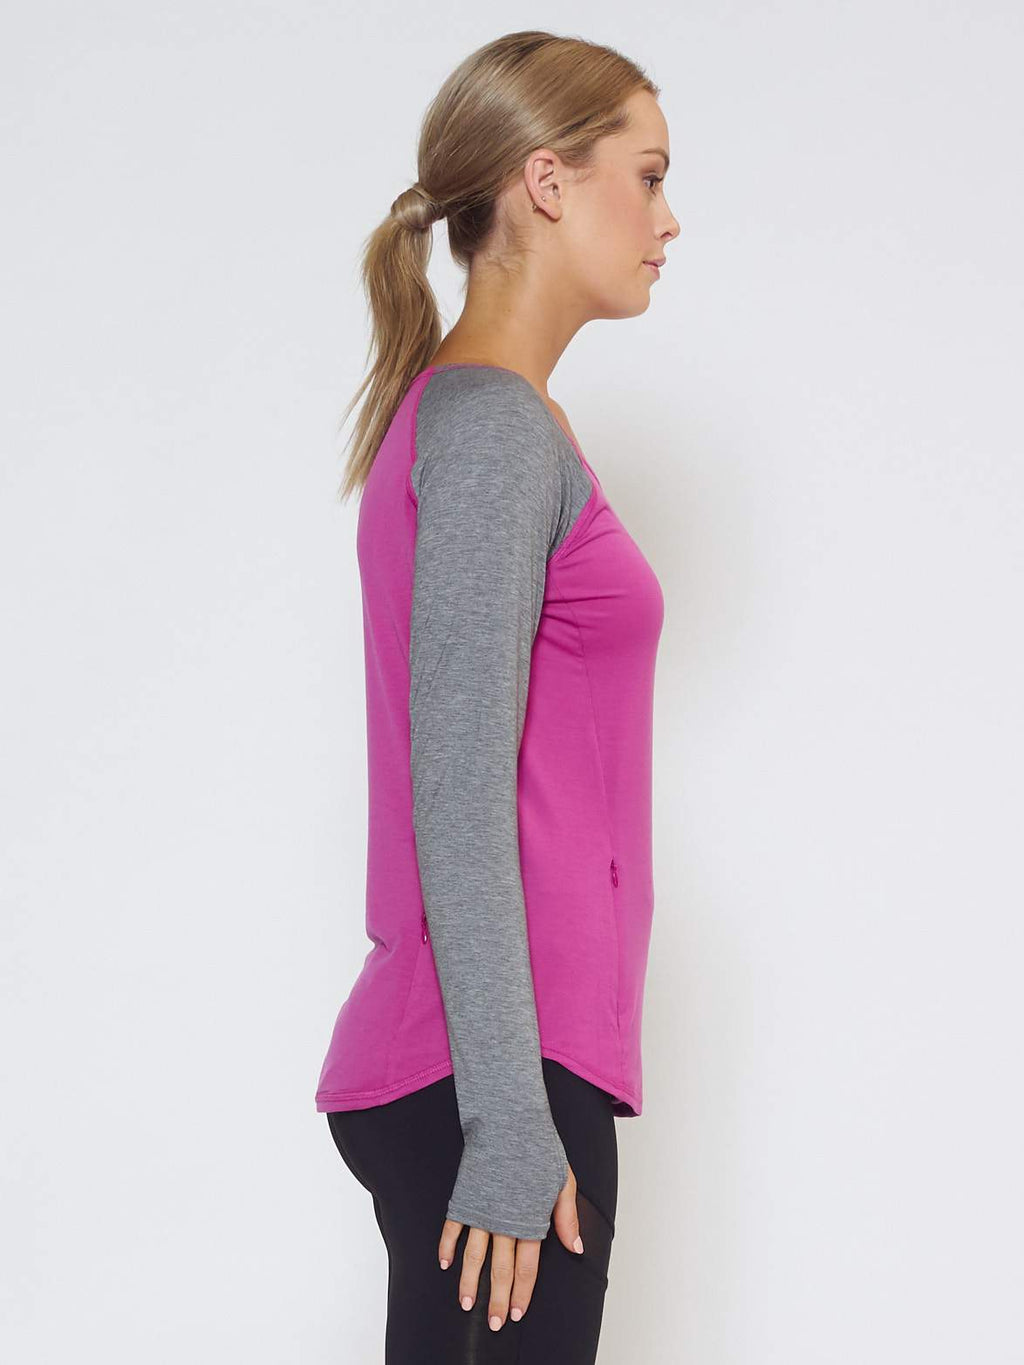 DRIFT Long-Sleeve Top - Purple - Be Activewear